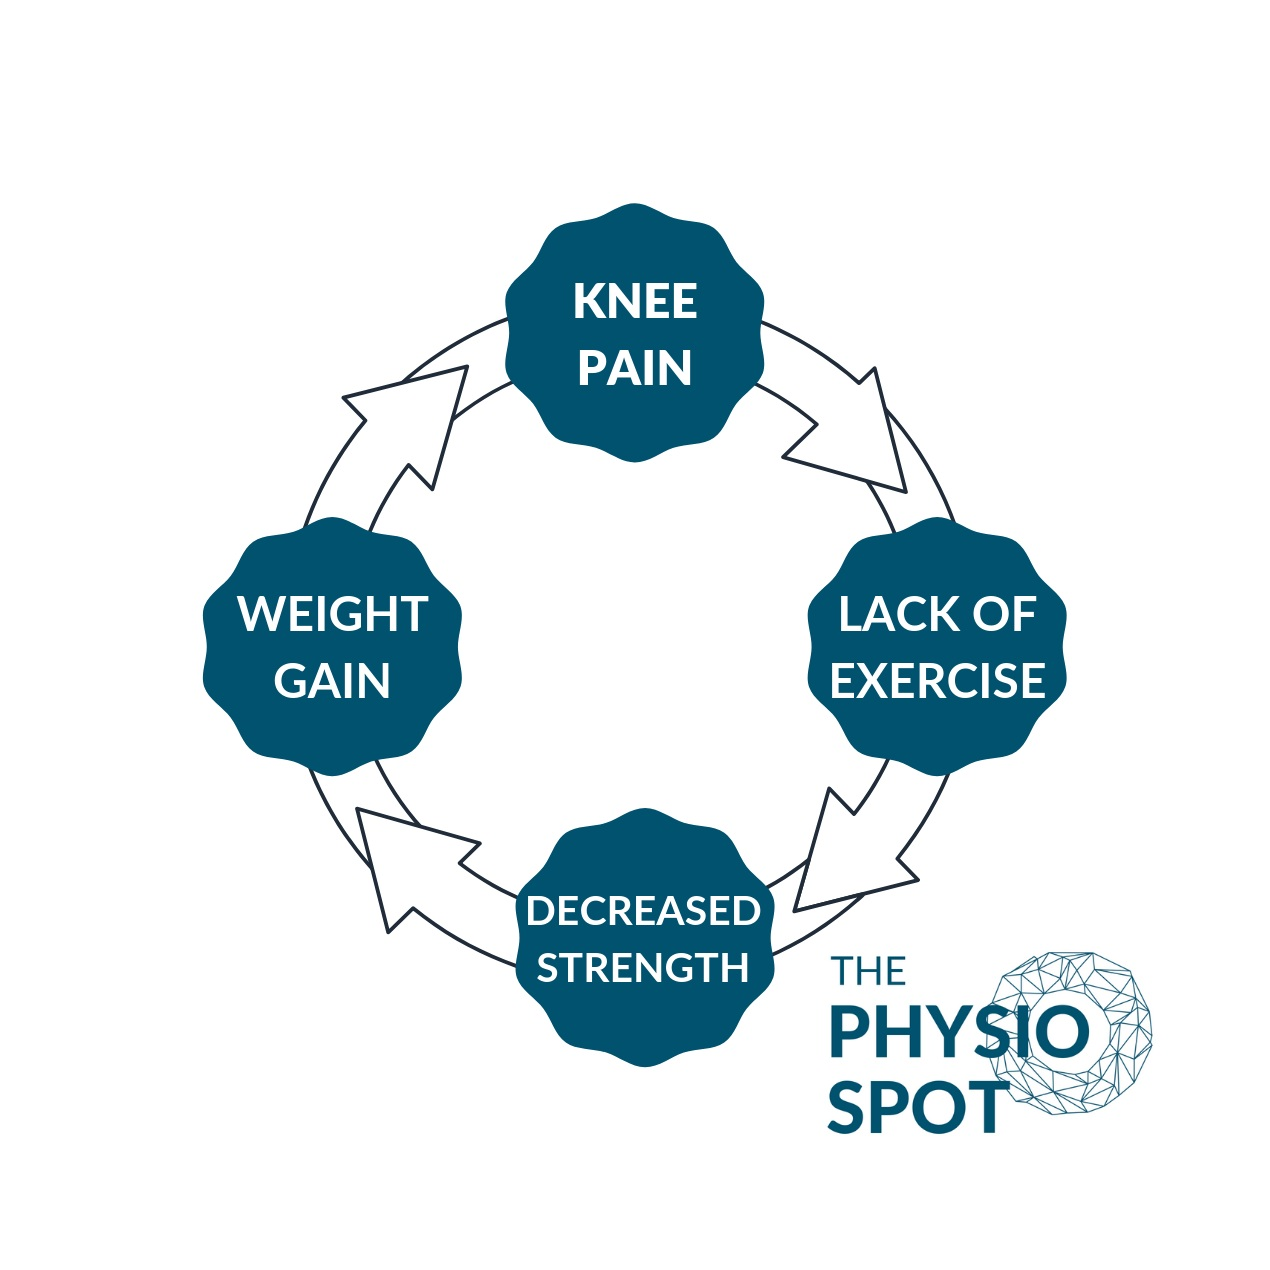 THE VICIOUS CYCLE OF KNEE PAIN